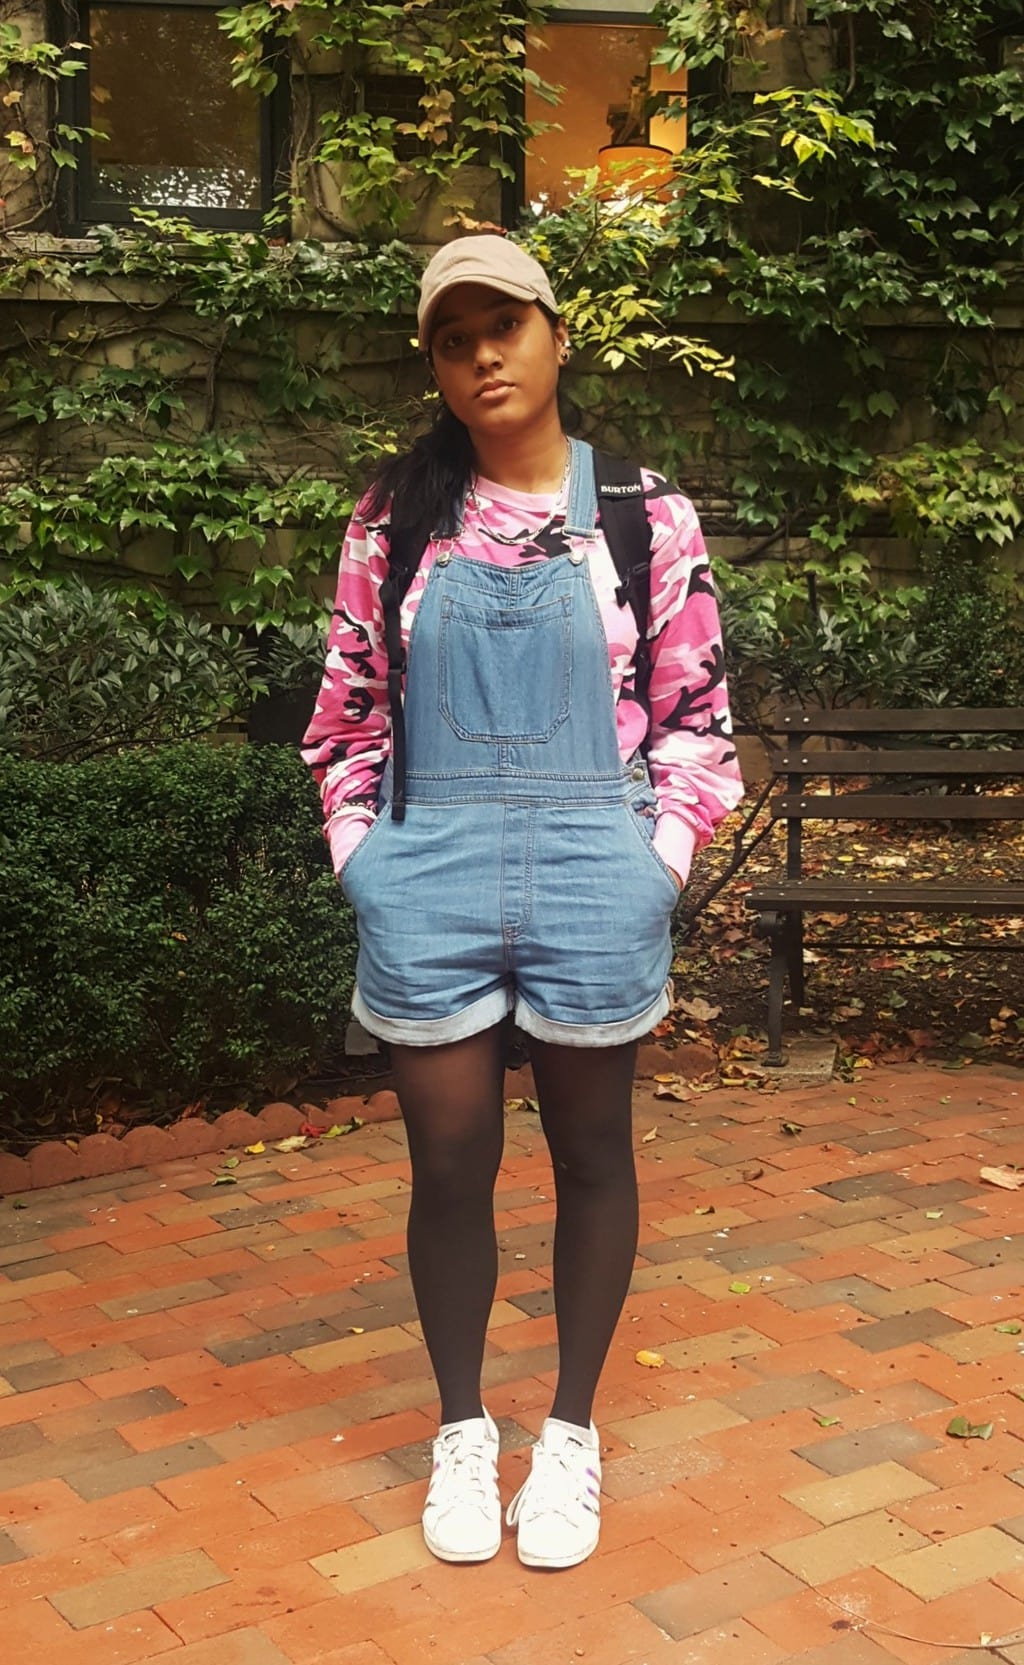 Barnard College student Alema wears a casual set of overall shorts with a bright pink camouflage long-sleeve tee underneath. She tops off her look with a tan baseball cap and black tights.